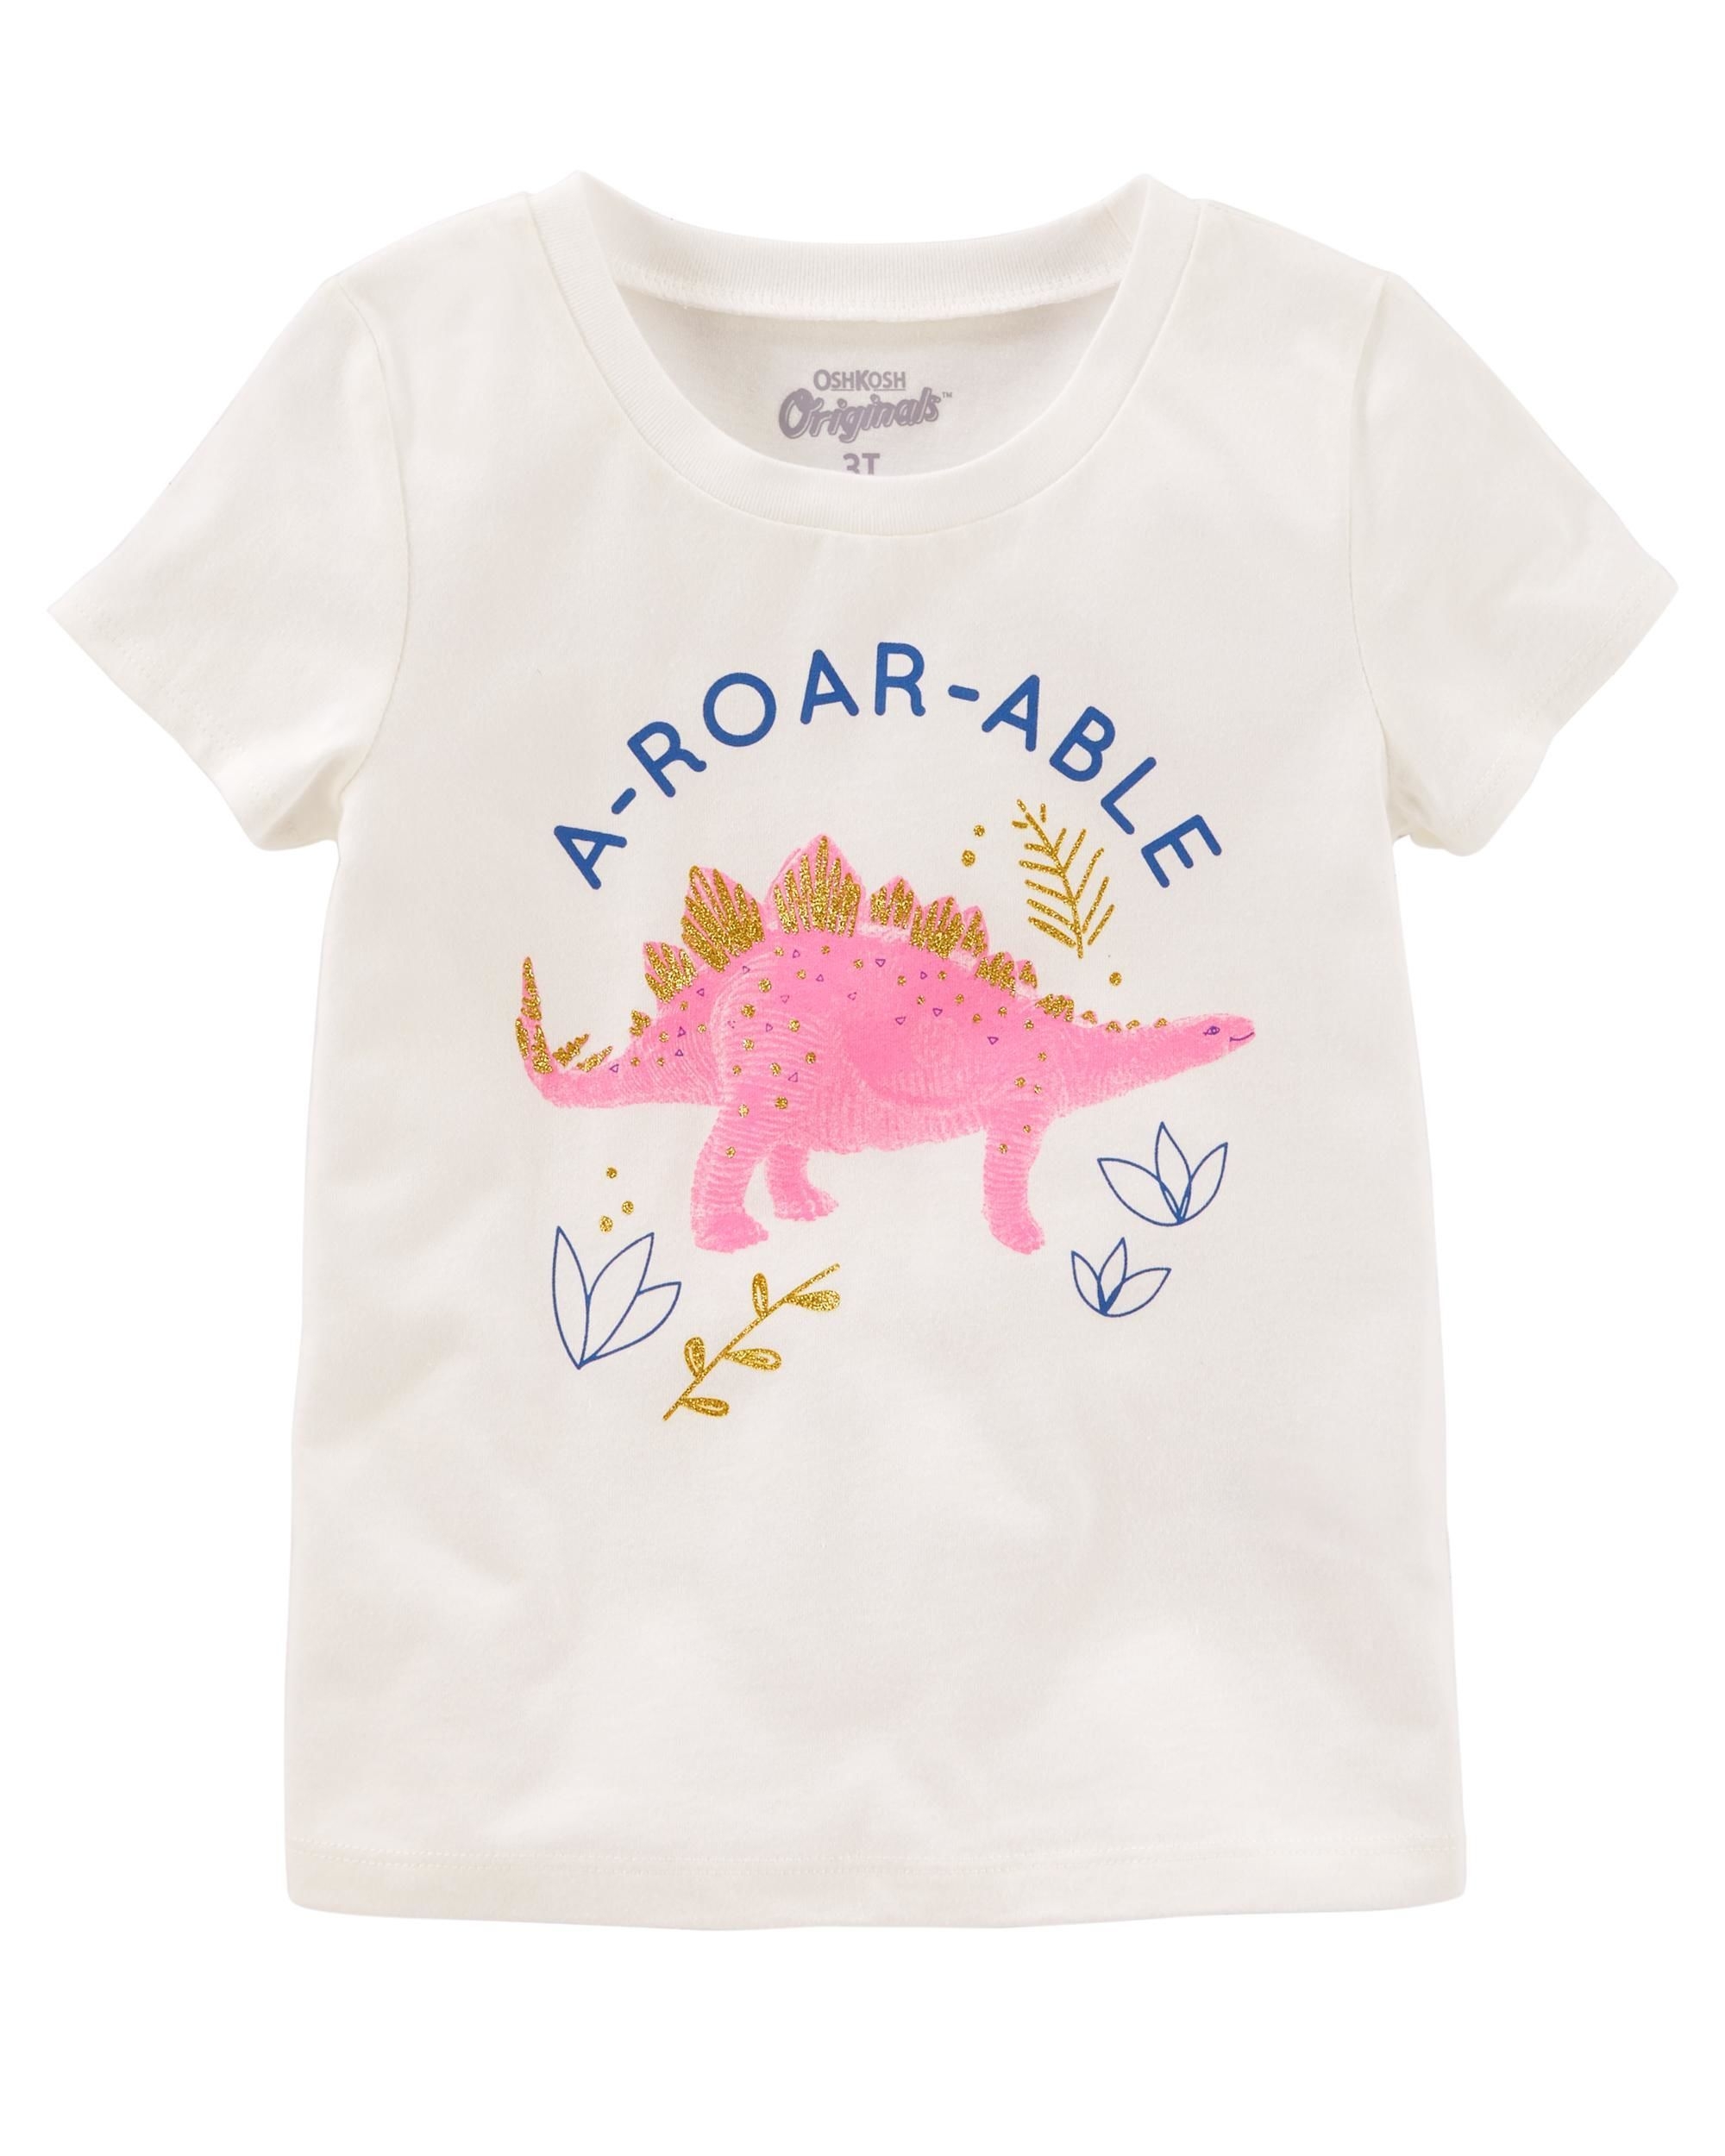 2a61151f OshKosh Originals Graphic Tee | #babygirljohnson style. | Baby girl ...